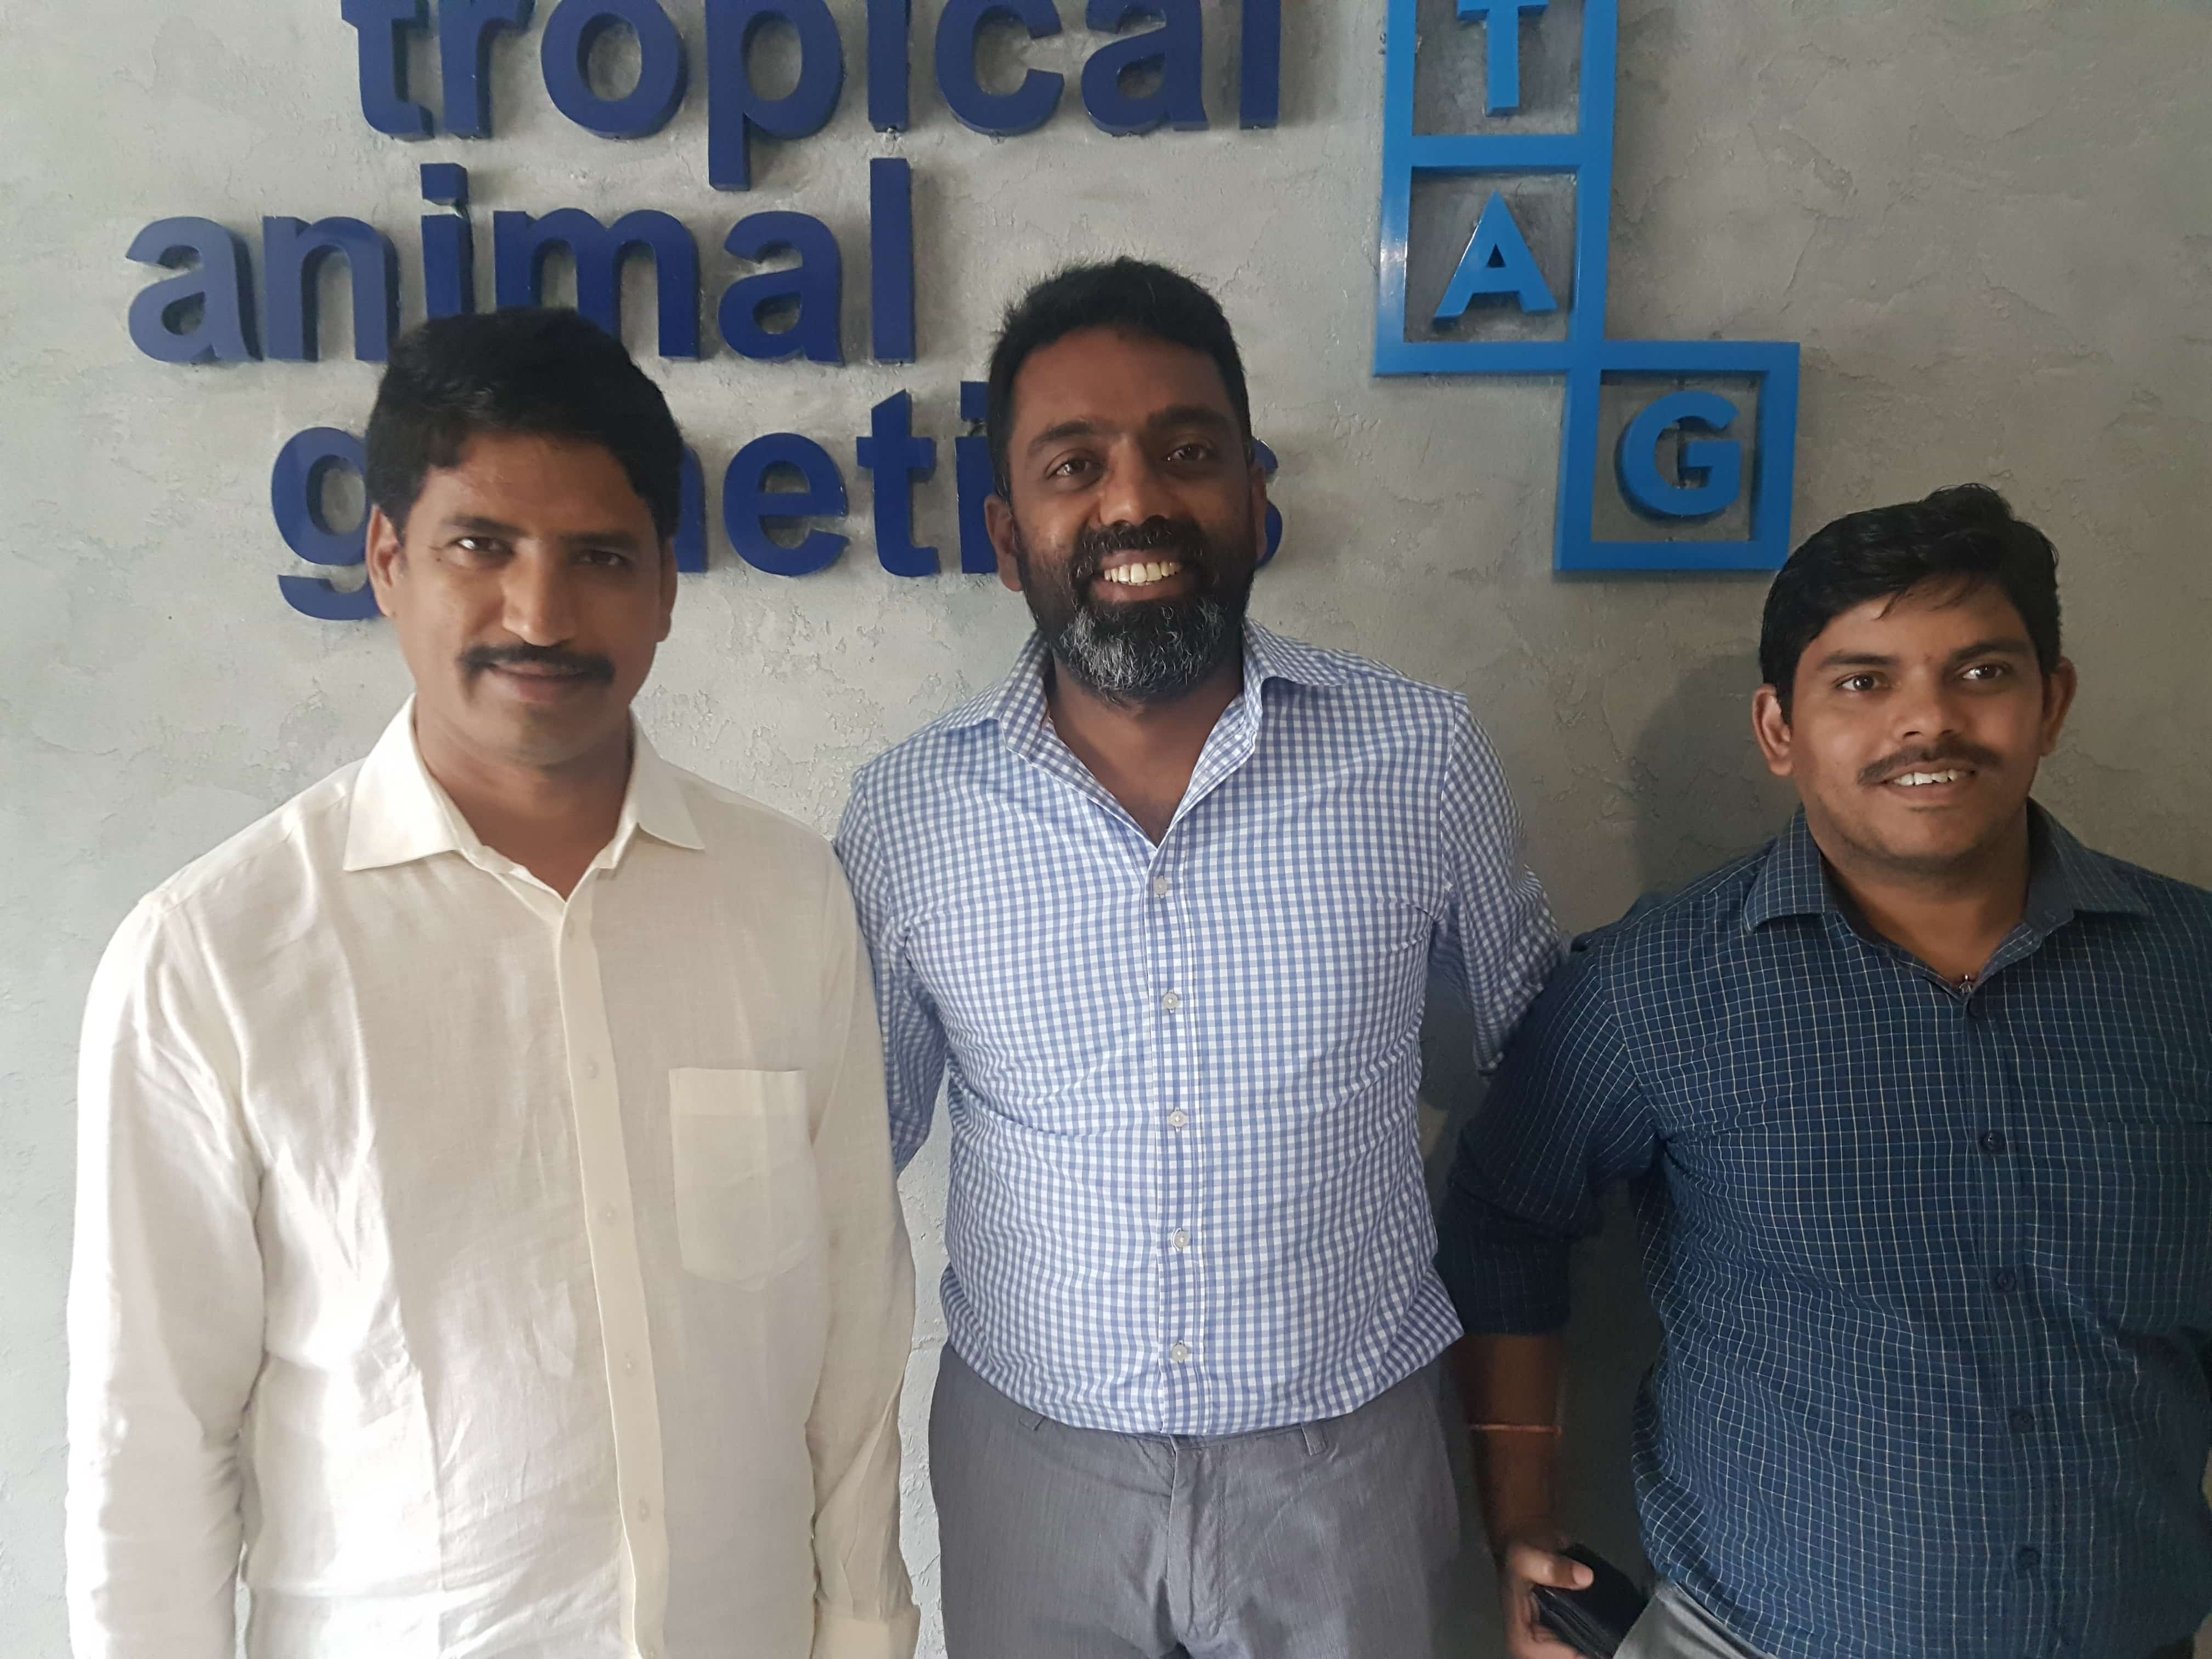 Tropical Animal Genetics (TAG): To Boost Milk Production in India